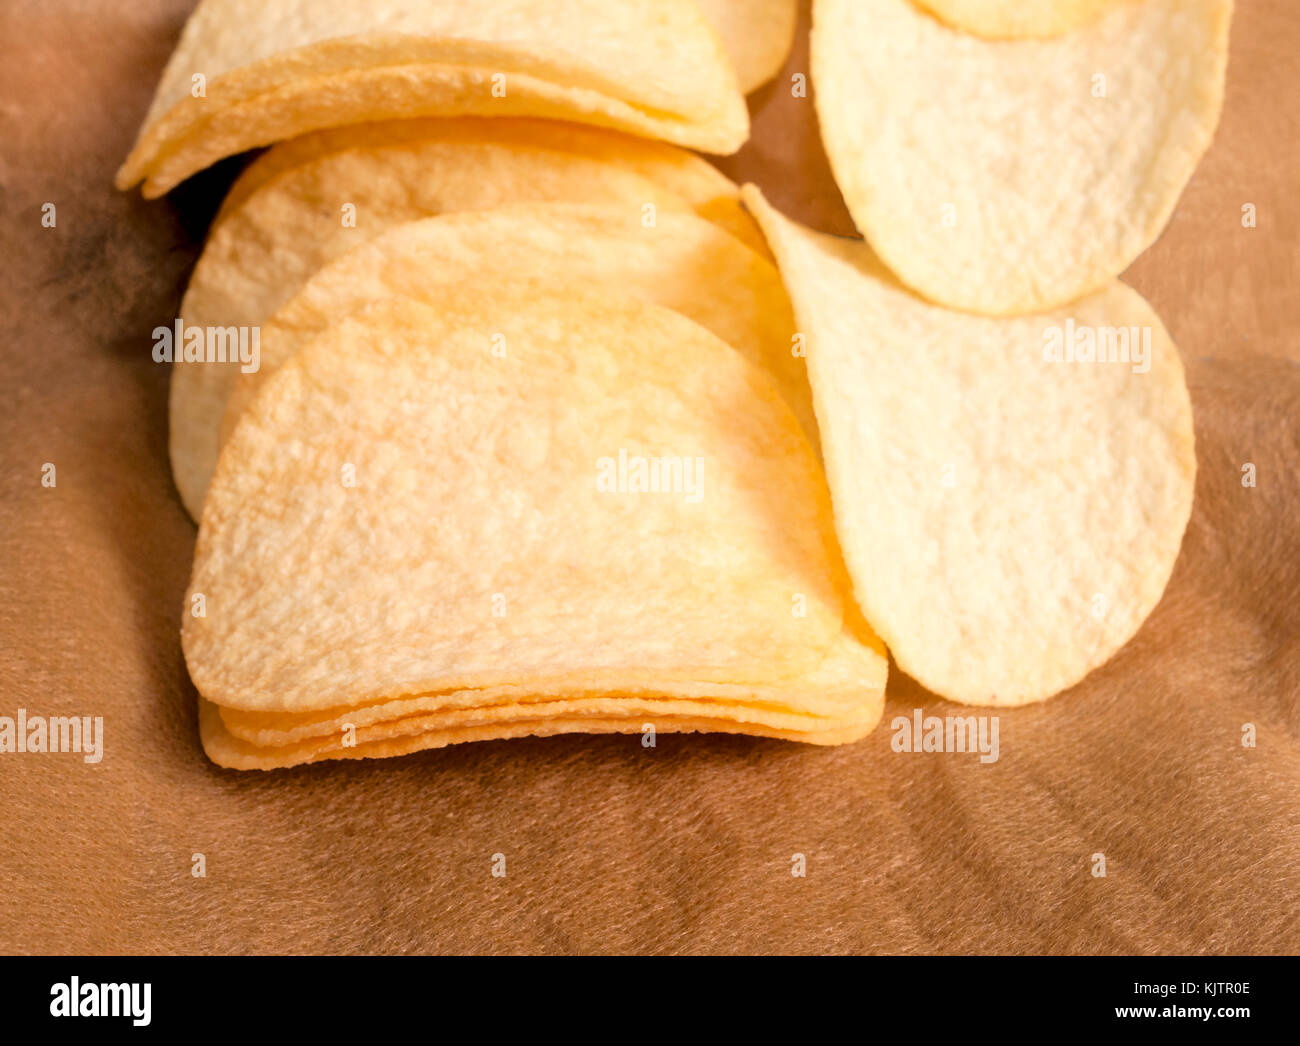 Selective focus on the front potato chips. - Stock Image